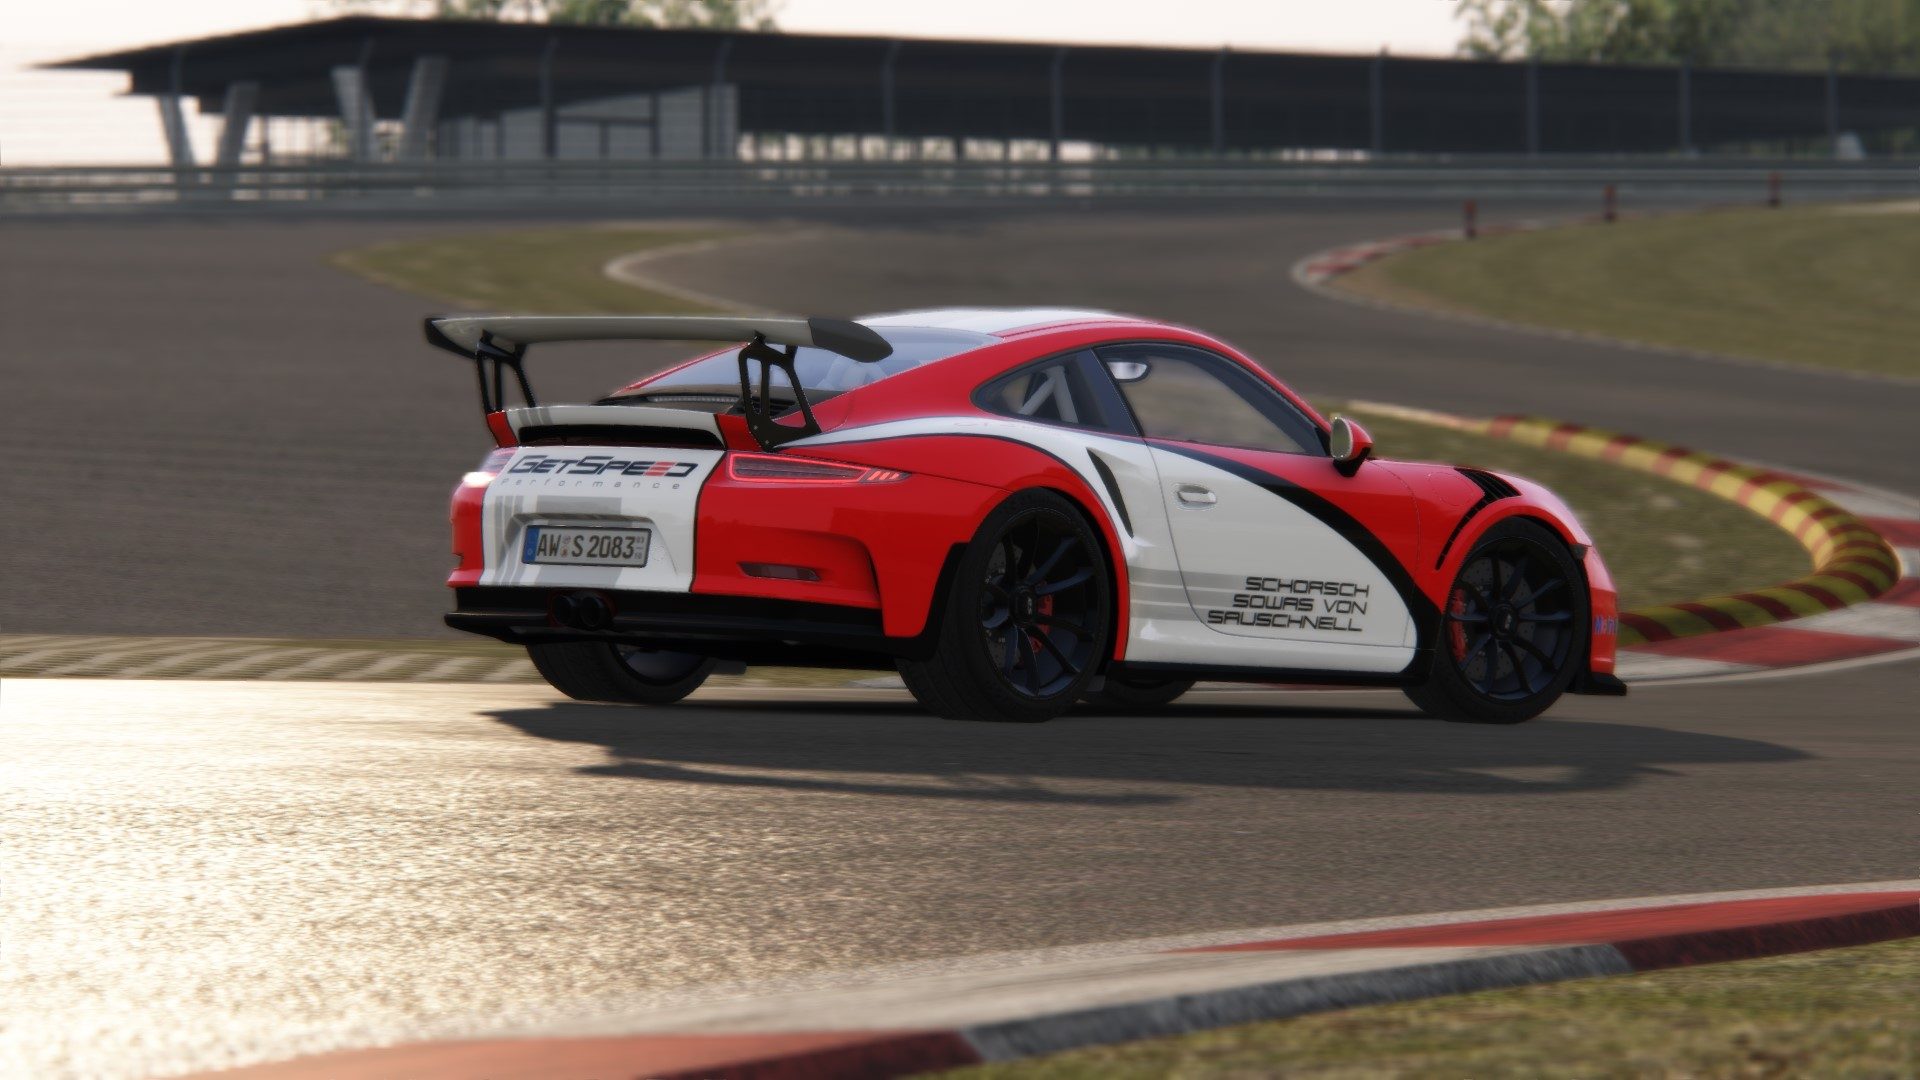 Screenshot_ks_porsche_911_gt3_rs_bilsterberg_22-2-117-18-5-29.jpg